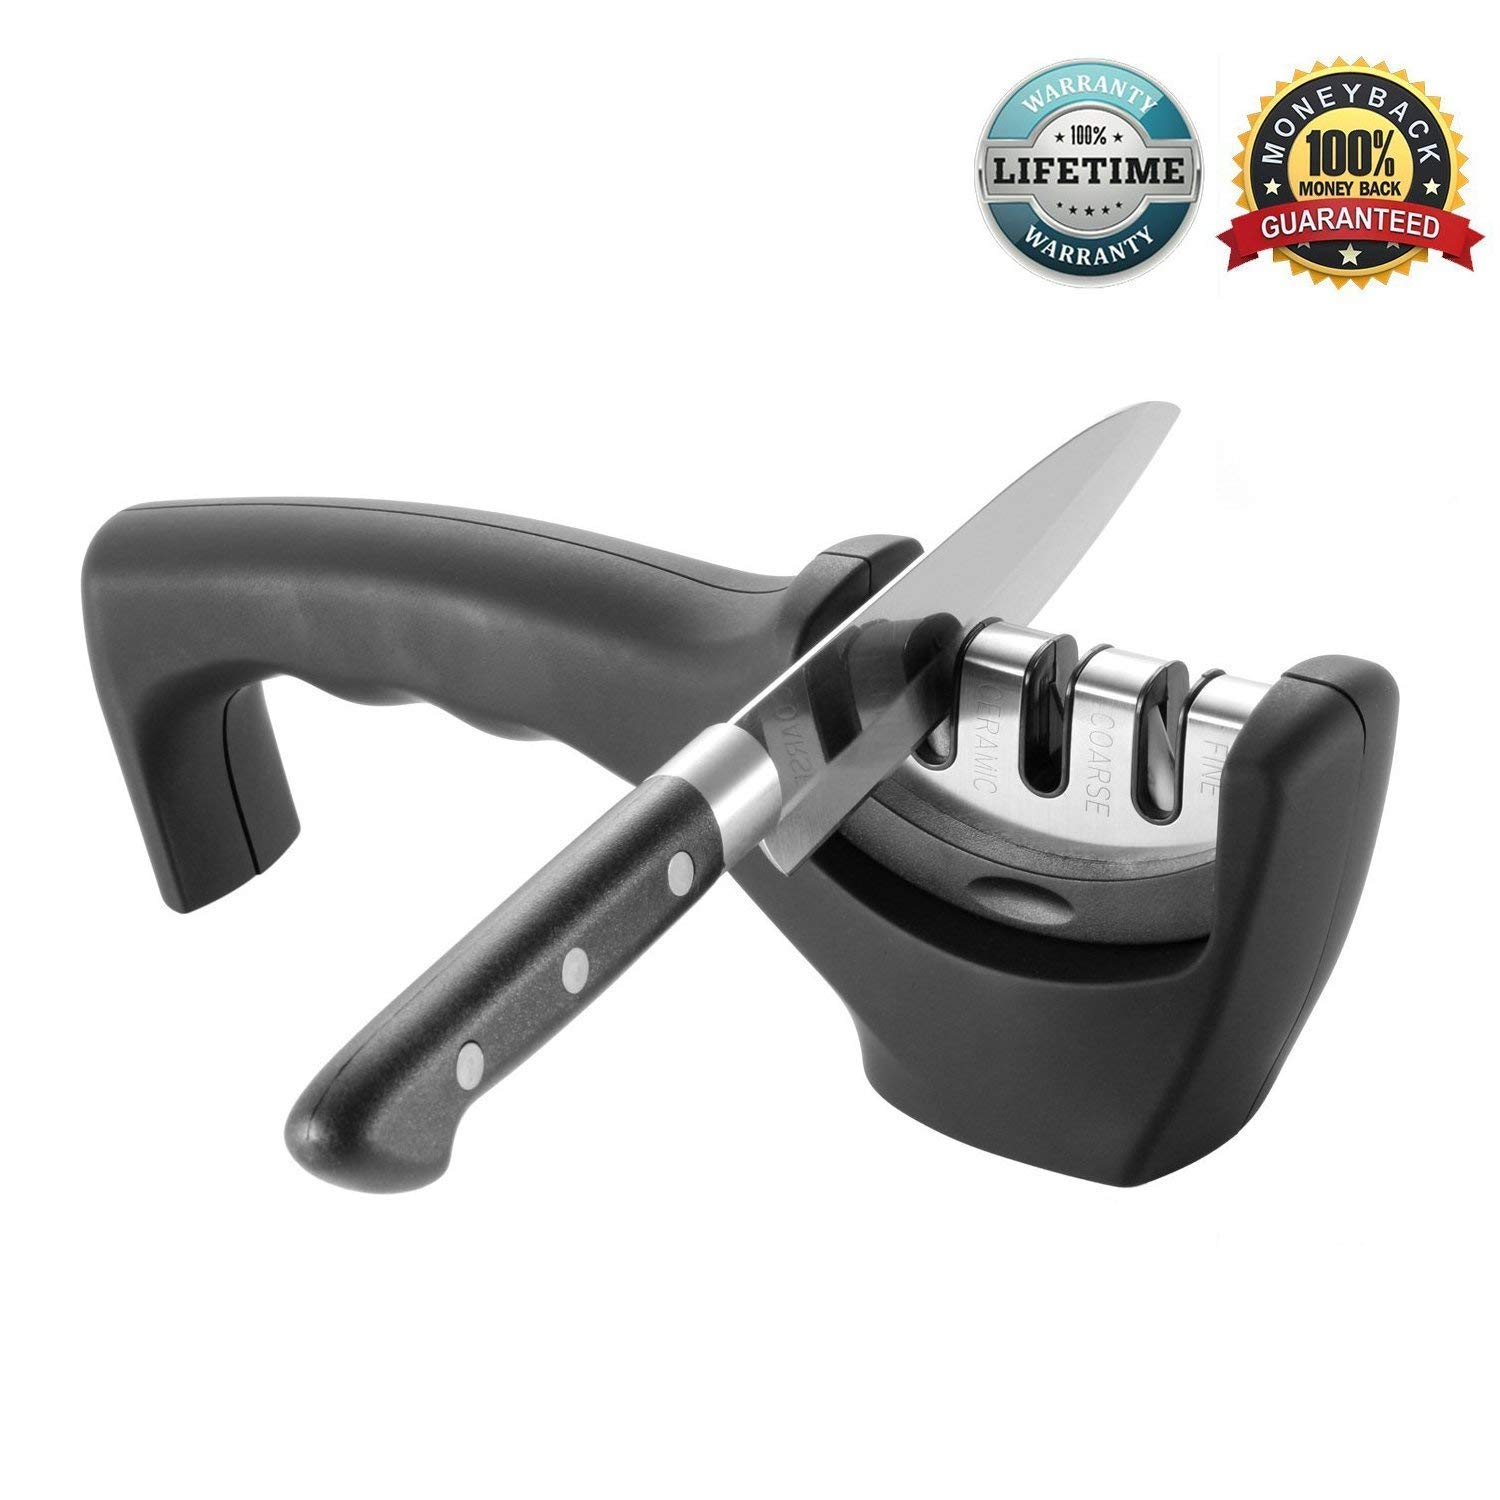 AMJUK Kitchen Knife Sharpener 3 Stage Professional Knife-Sharpening System | Sharpens Steel & Ceramic Knives in All Sizes (Black)